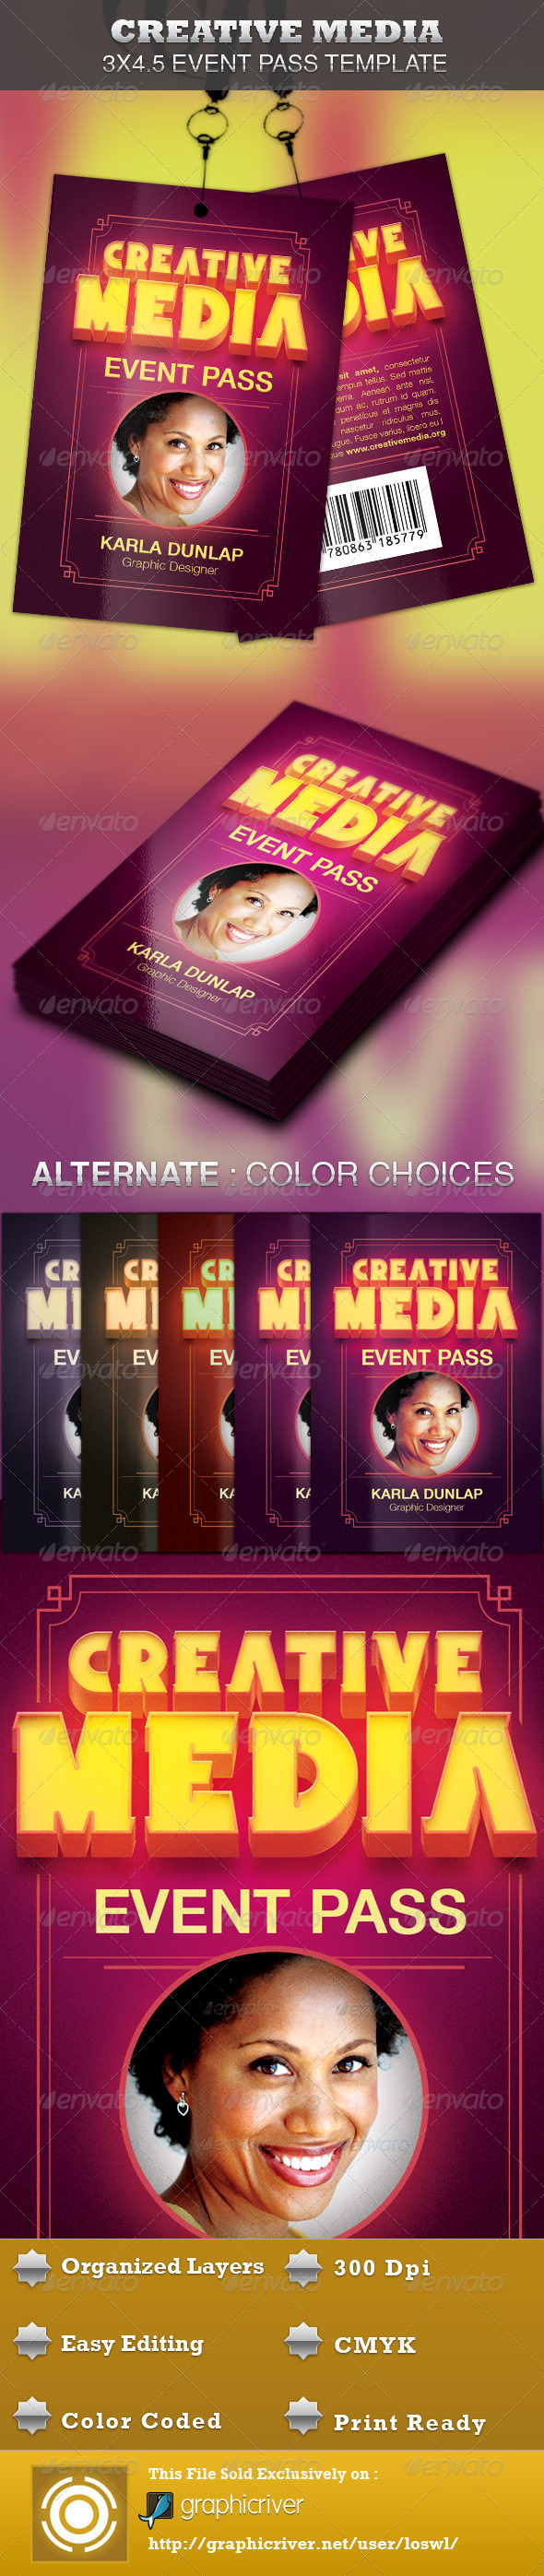 Creative Media Event Pass Template - Miscellaneous Print Templates